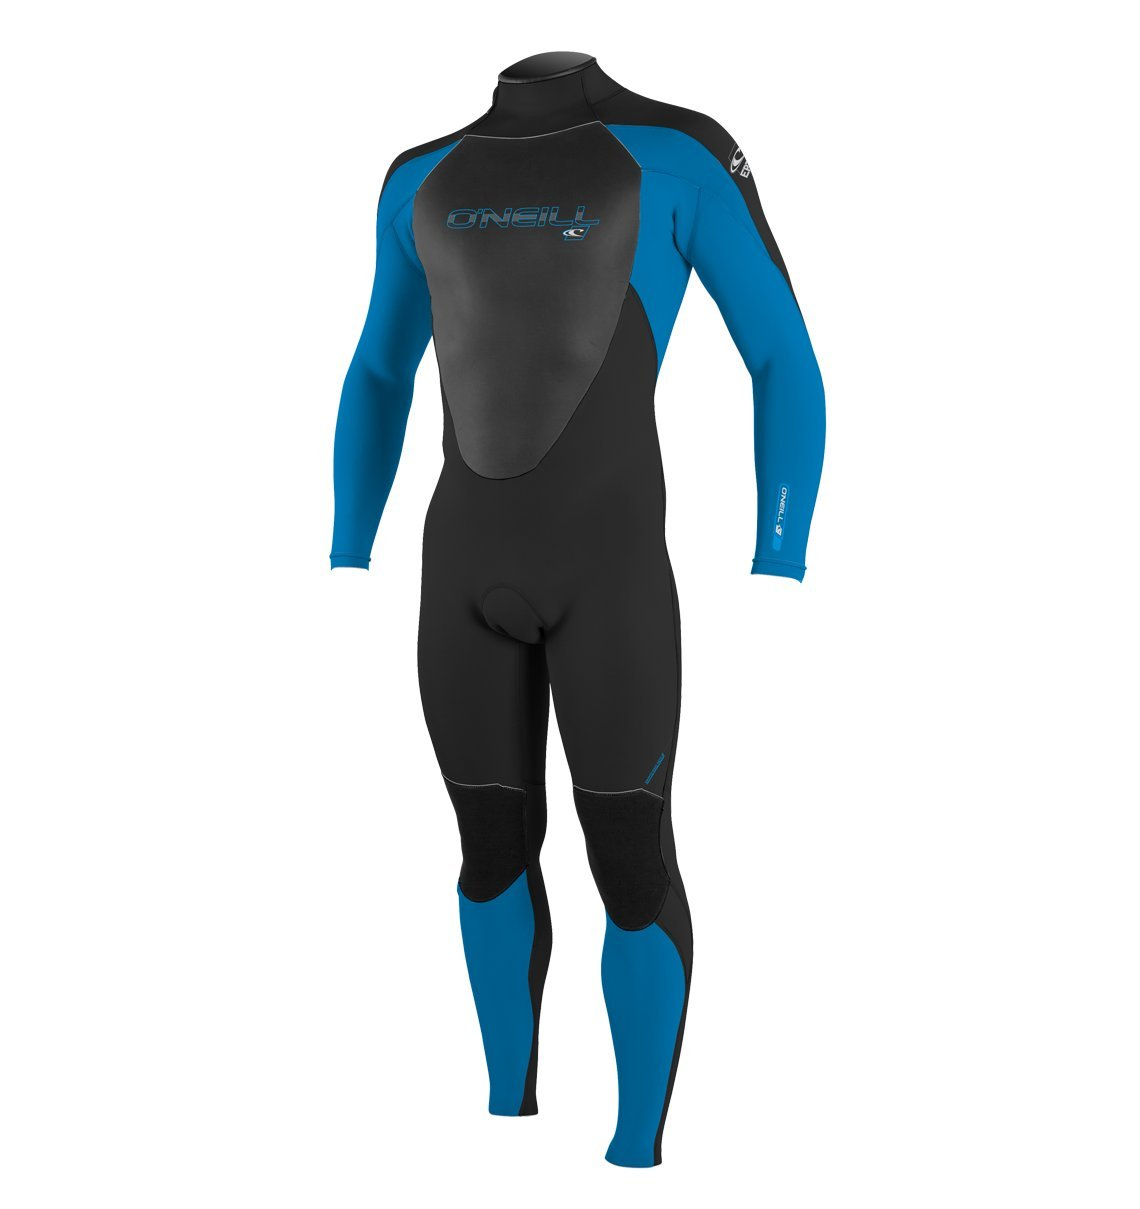 O'Neill Men's Epic 3/2mm Back Zip Full Wetsuit, Black/BrightBlue, Small